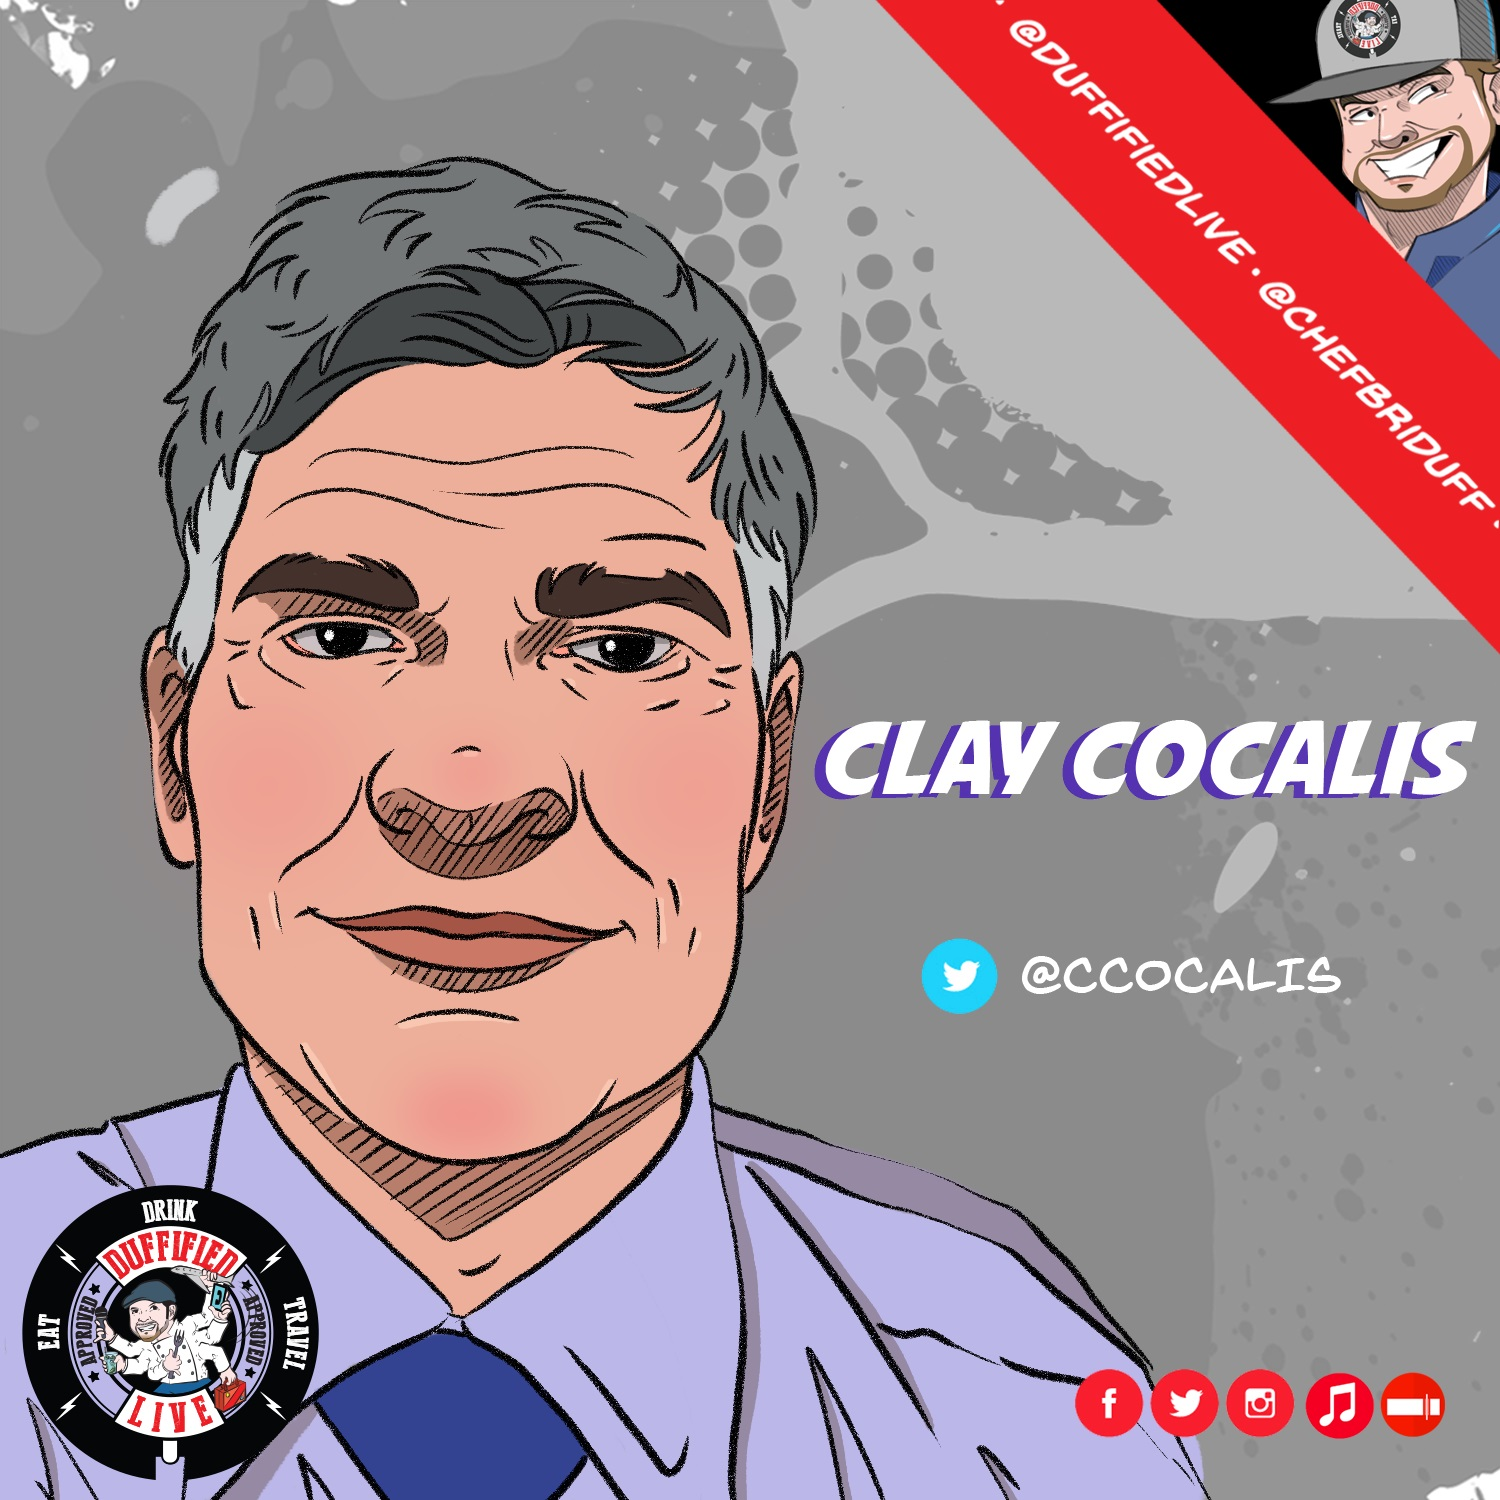 Clay Cocalis, Foreman of the Lorena Bobbitt Trial